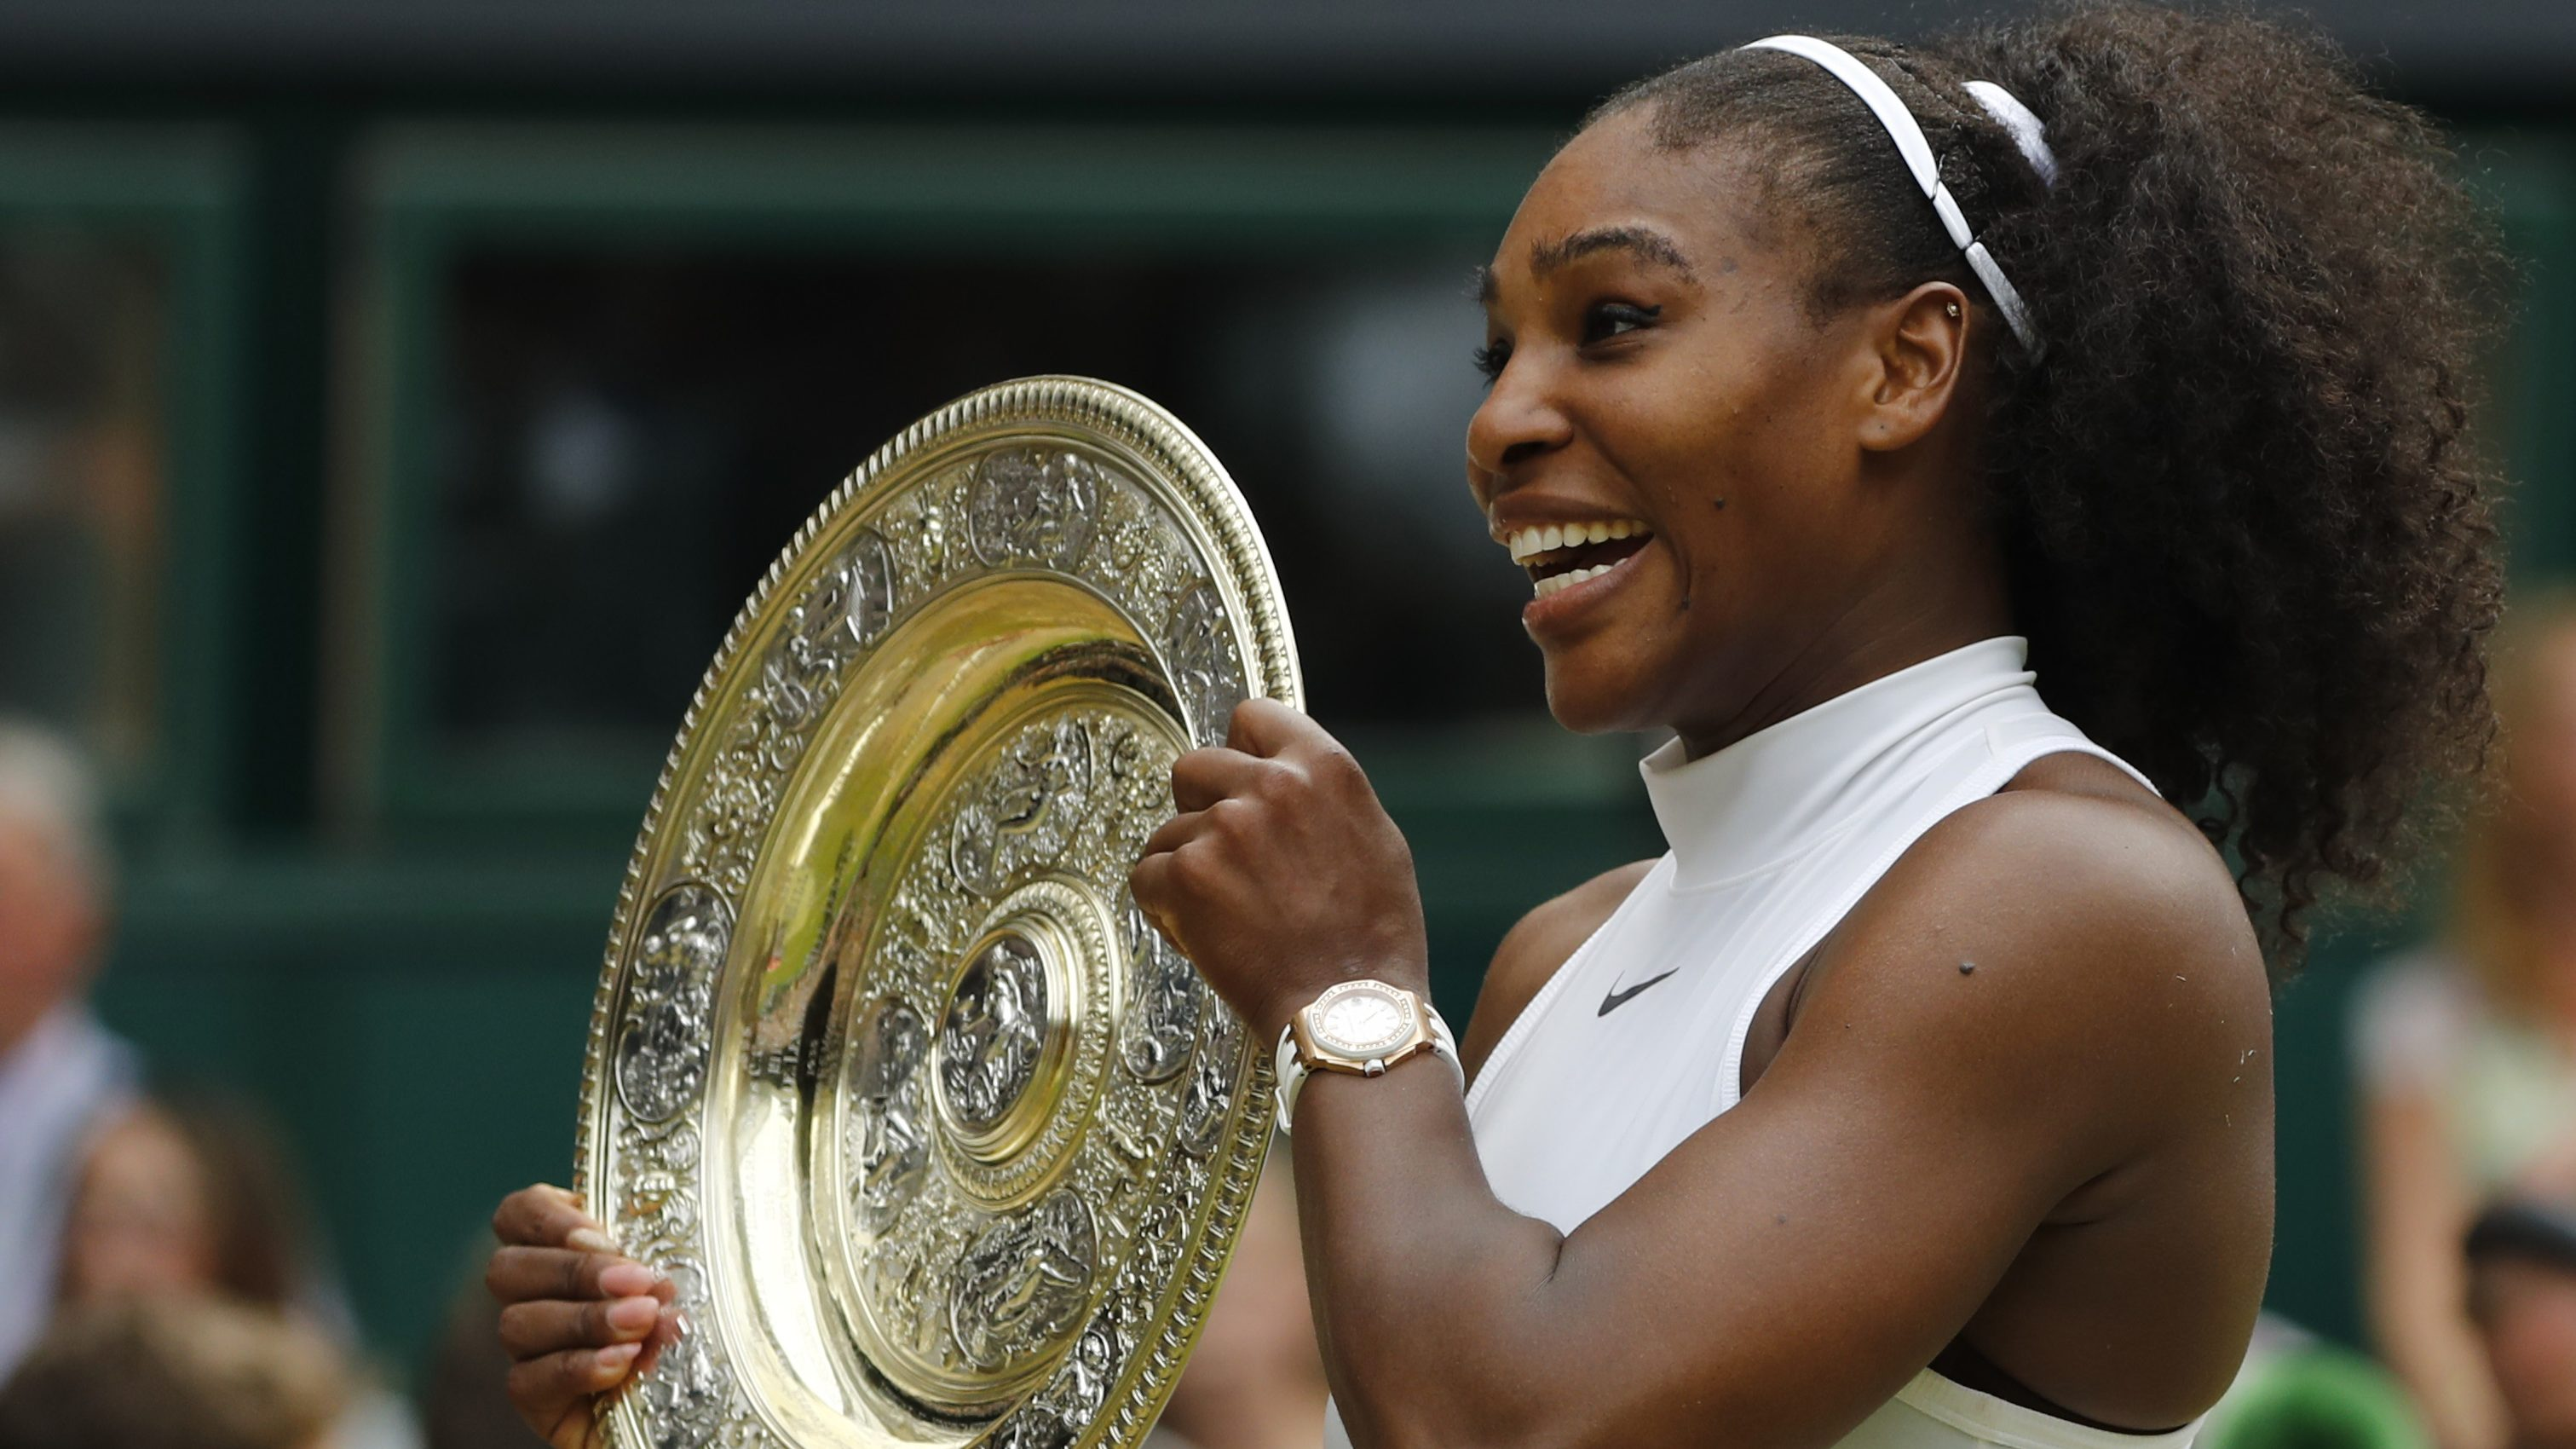 Britain Tennis - Wimbledon - All England Lawn Tennis & Croquet Club, Wimbledon, England - 9/7/16 USA's Serena Williams celebrates winning her womens singles final match against Germany's Angelique Kerber with the trophy REUTERS/Stefan Wermuth - RTSH2WM